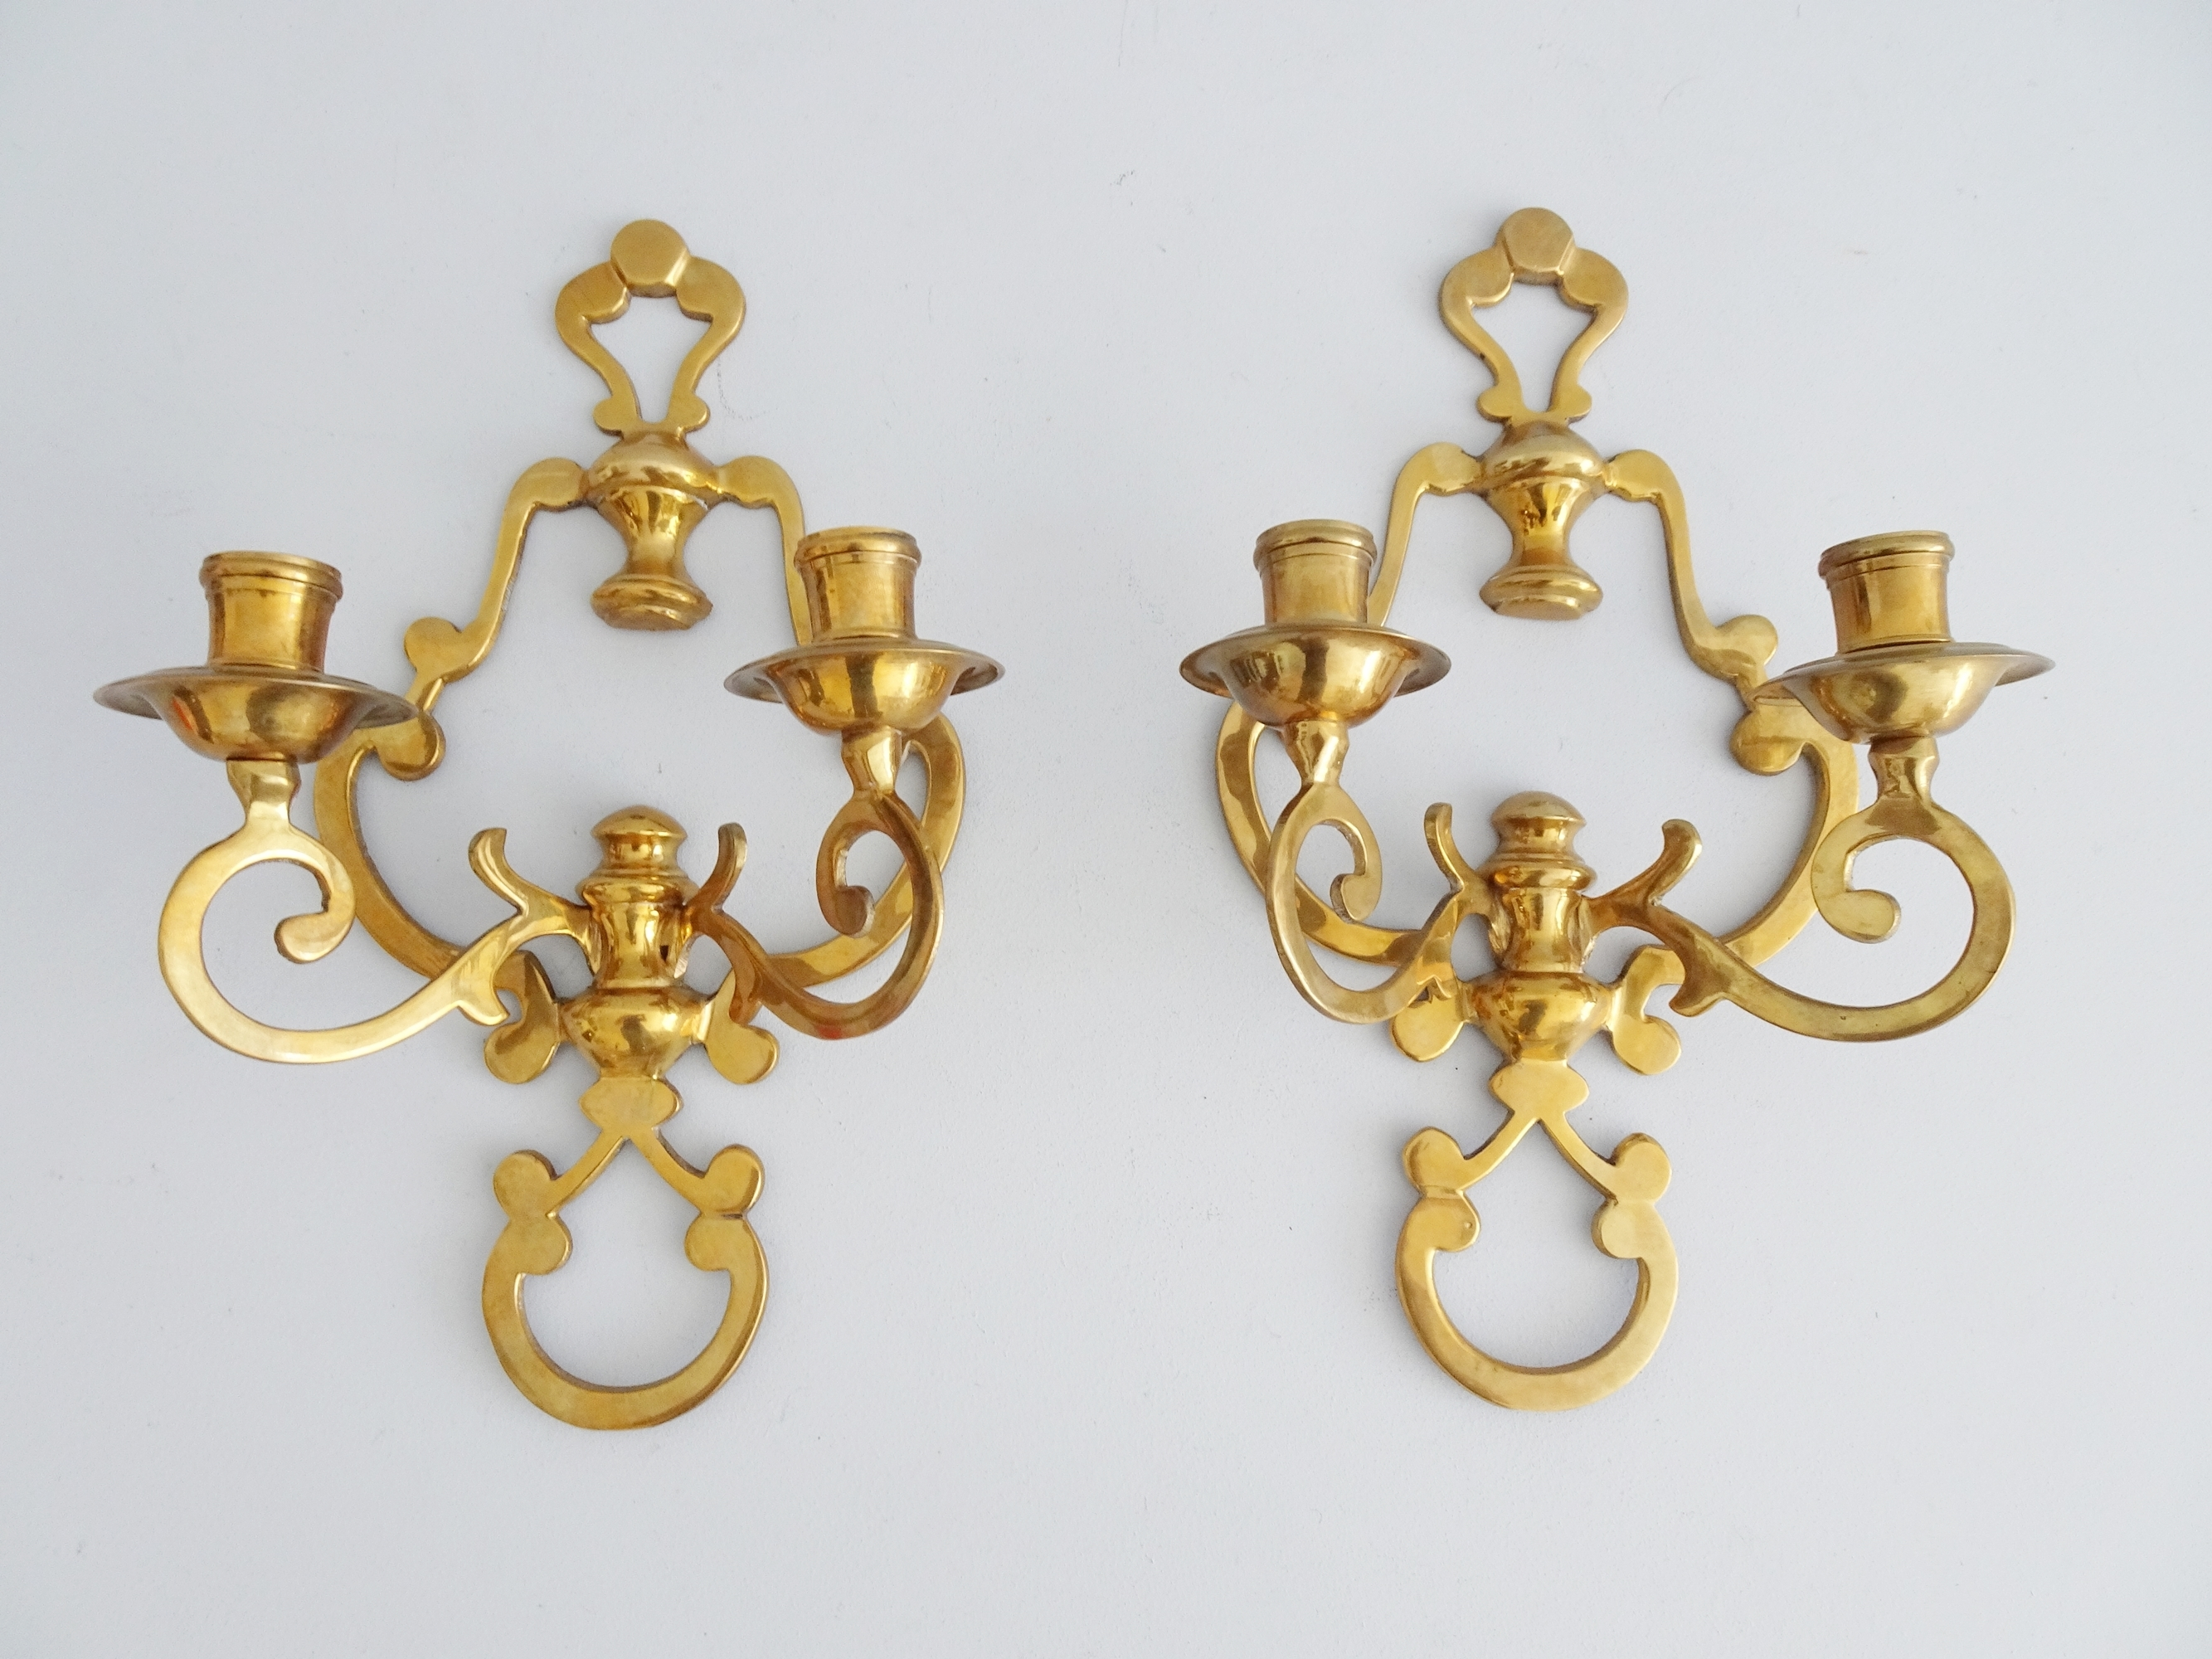 Wall Candle Holder Brass Candle Holder Set Made Of Cast Brass Wall Sconce Vinterior